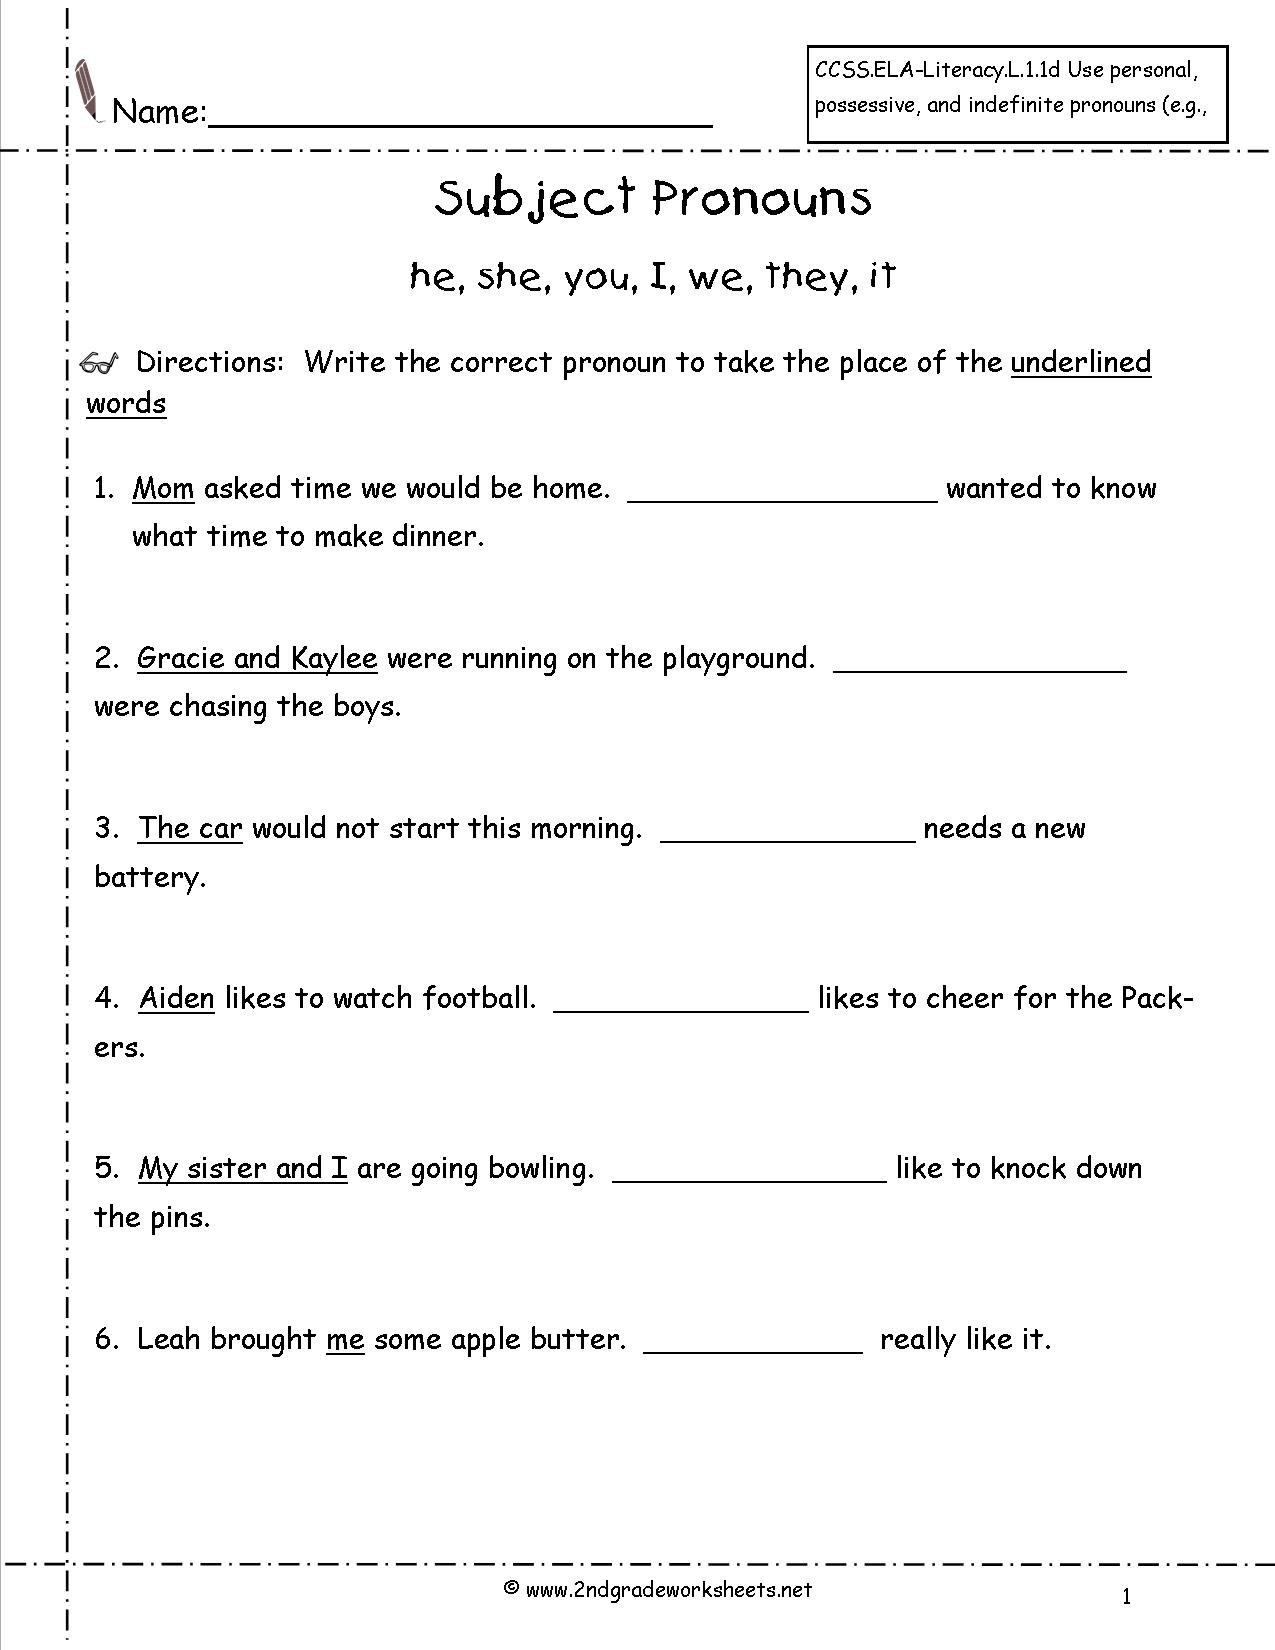 12 Best Images Of Nouns And Pronouns Worksheets Grade 2